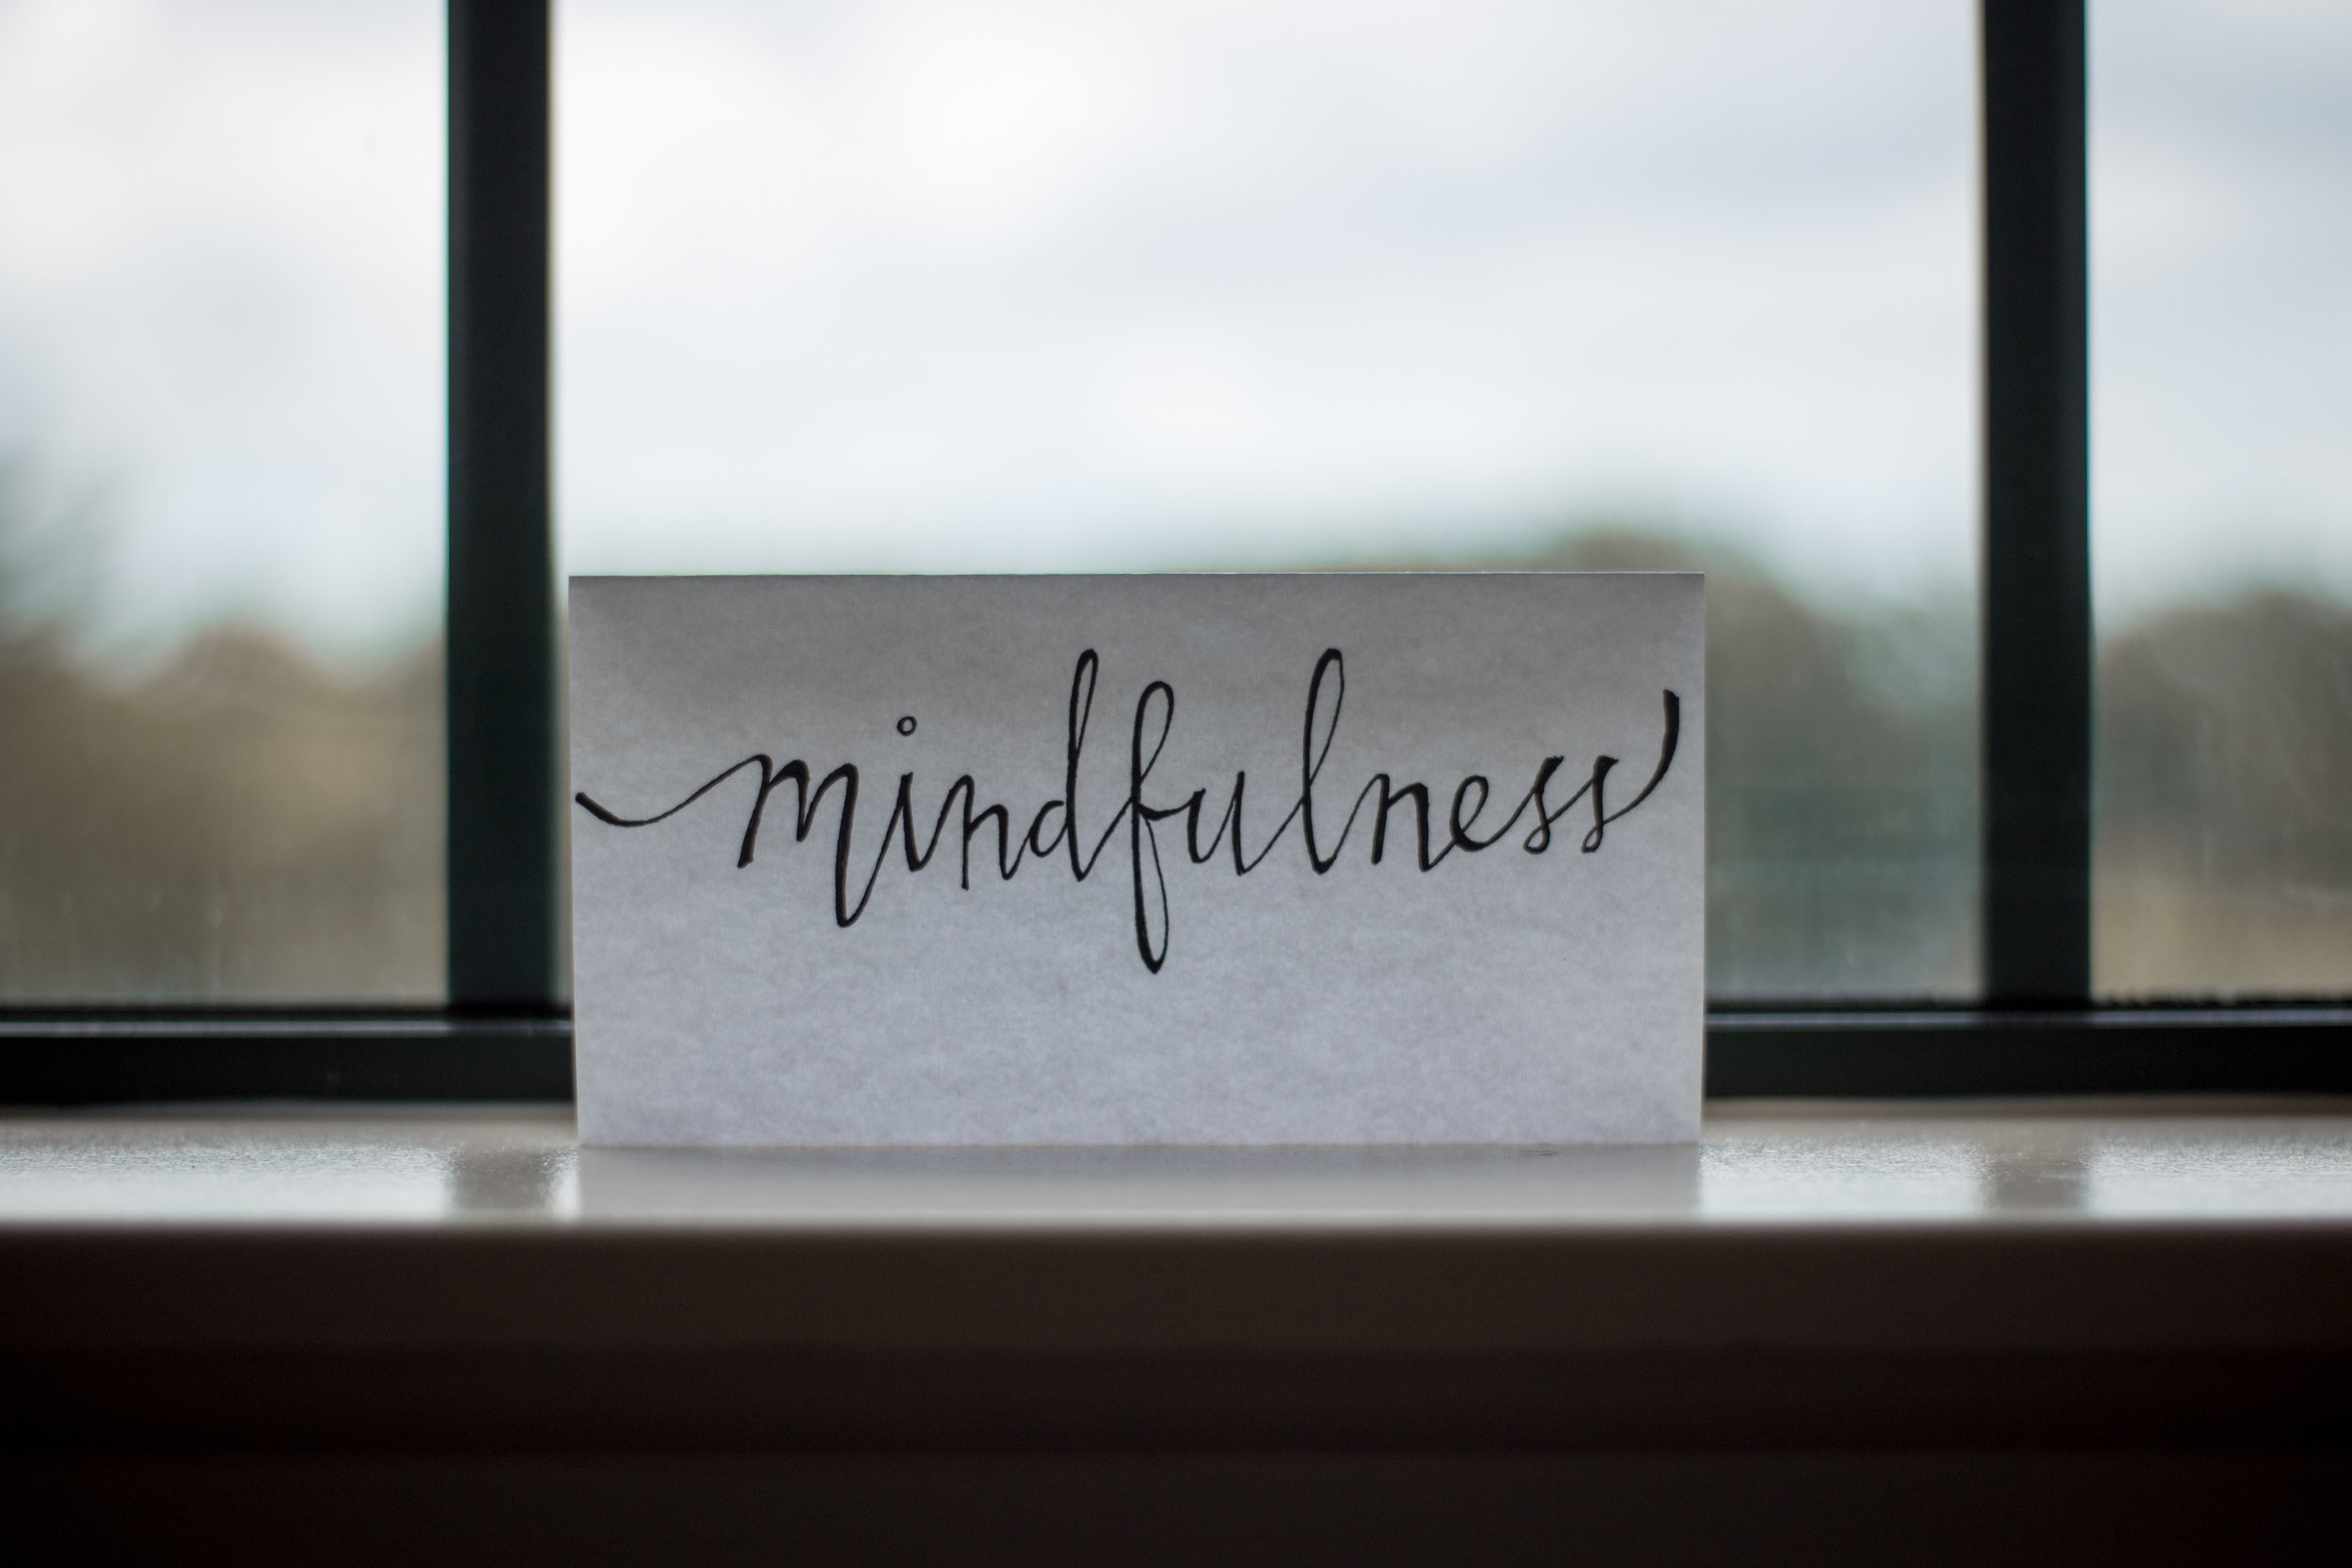 We've all read the research about why mindfulness benefits students, but can it help teachers as well? Photo by Lesly Juarez.